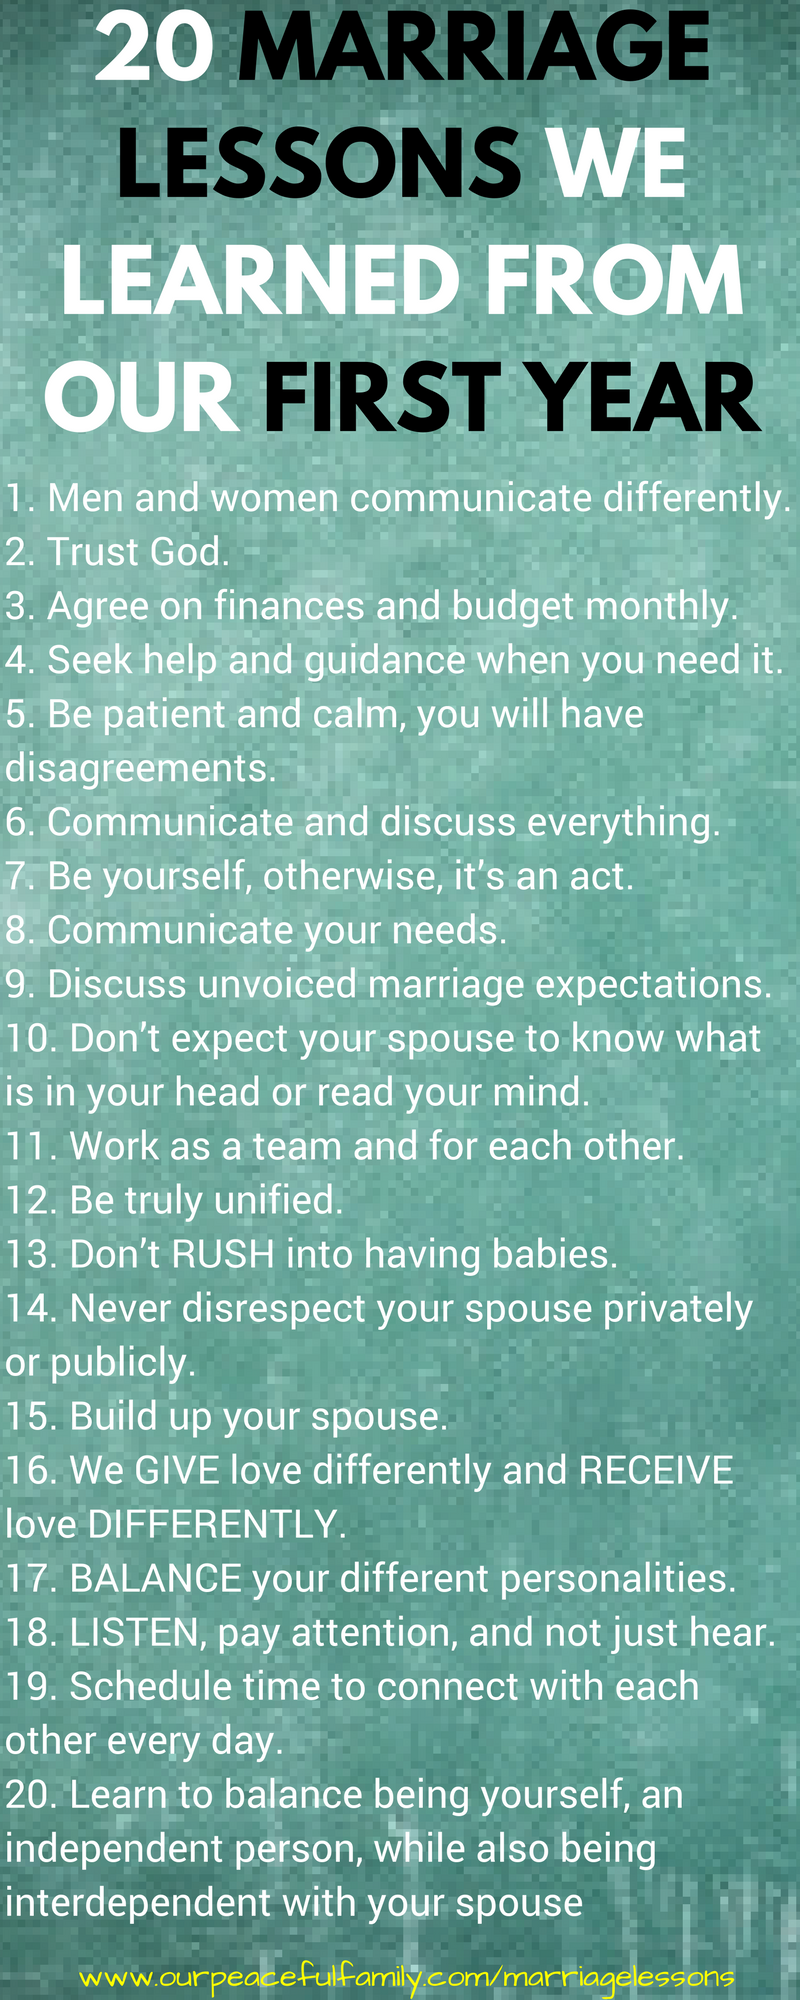 Lessons from First year of marriage